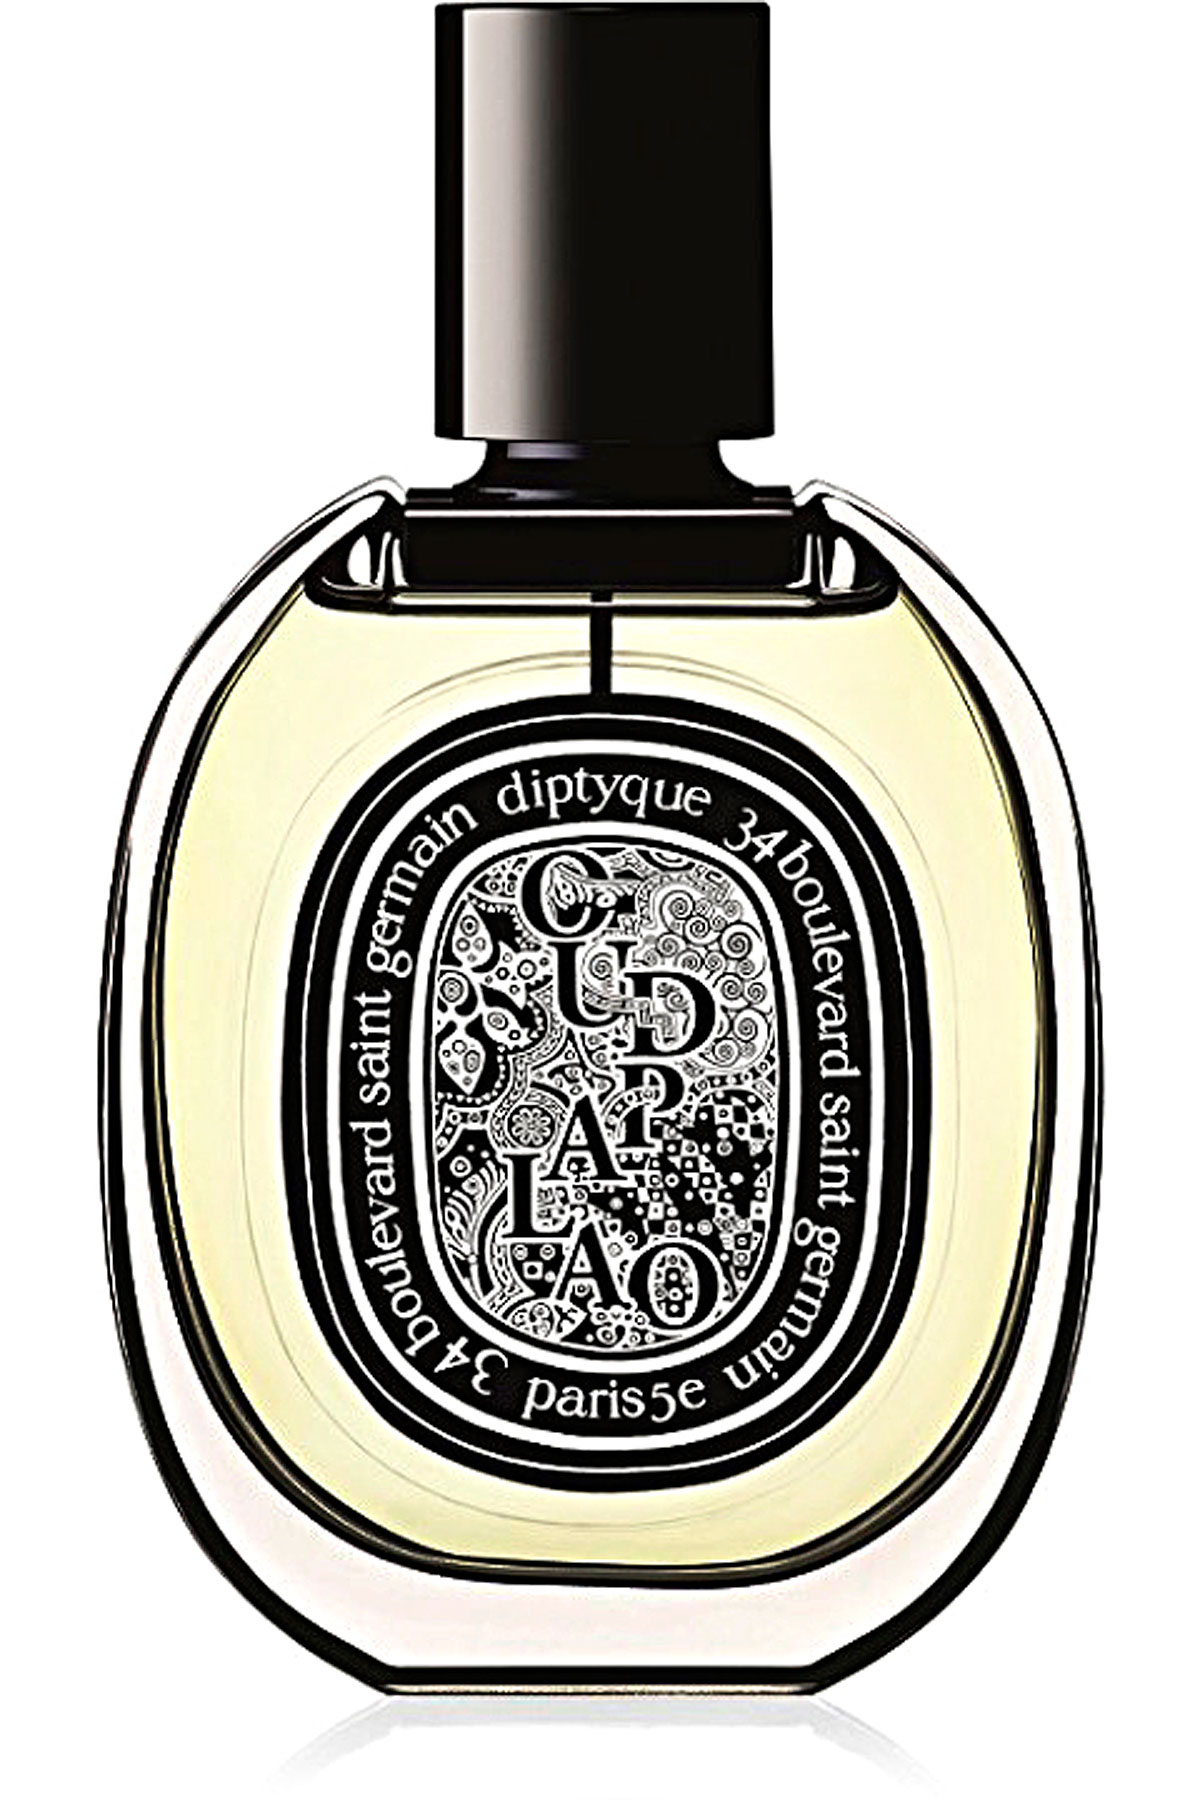 Diptyque Fragrances for Men, Oud Palao - Eau De Parfum - 75 Ml, 2019, 75 ml